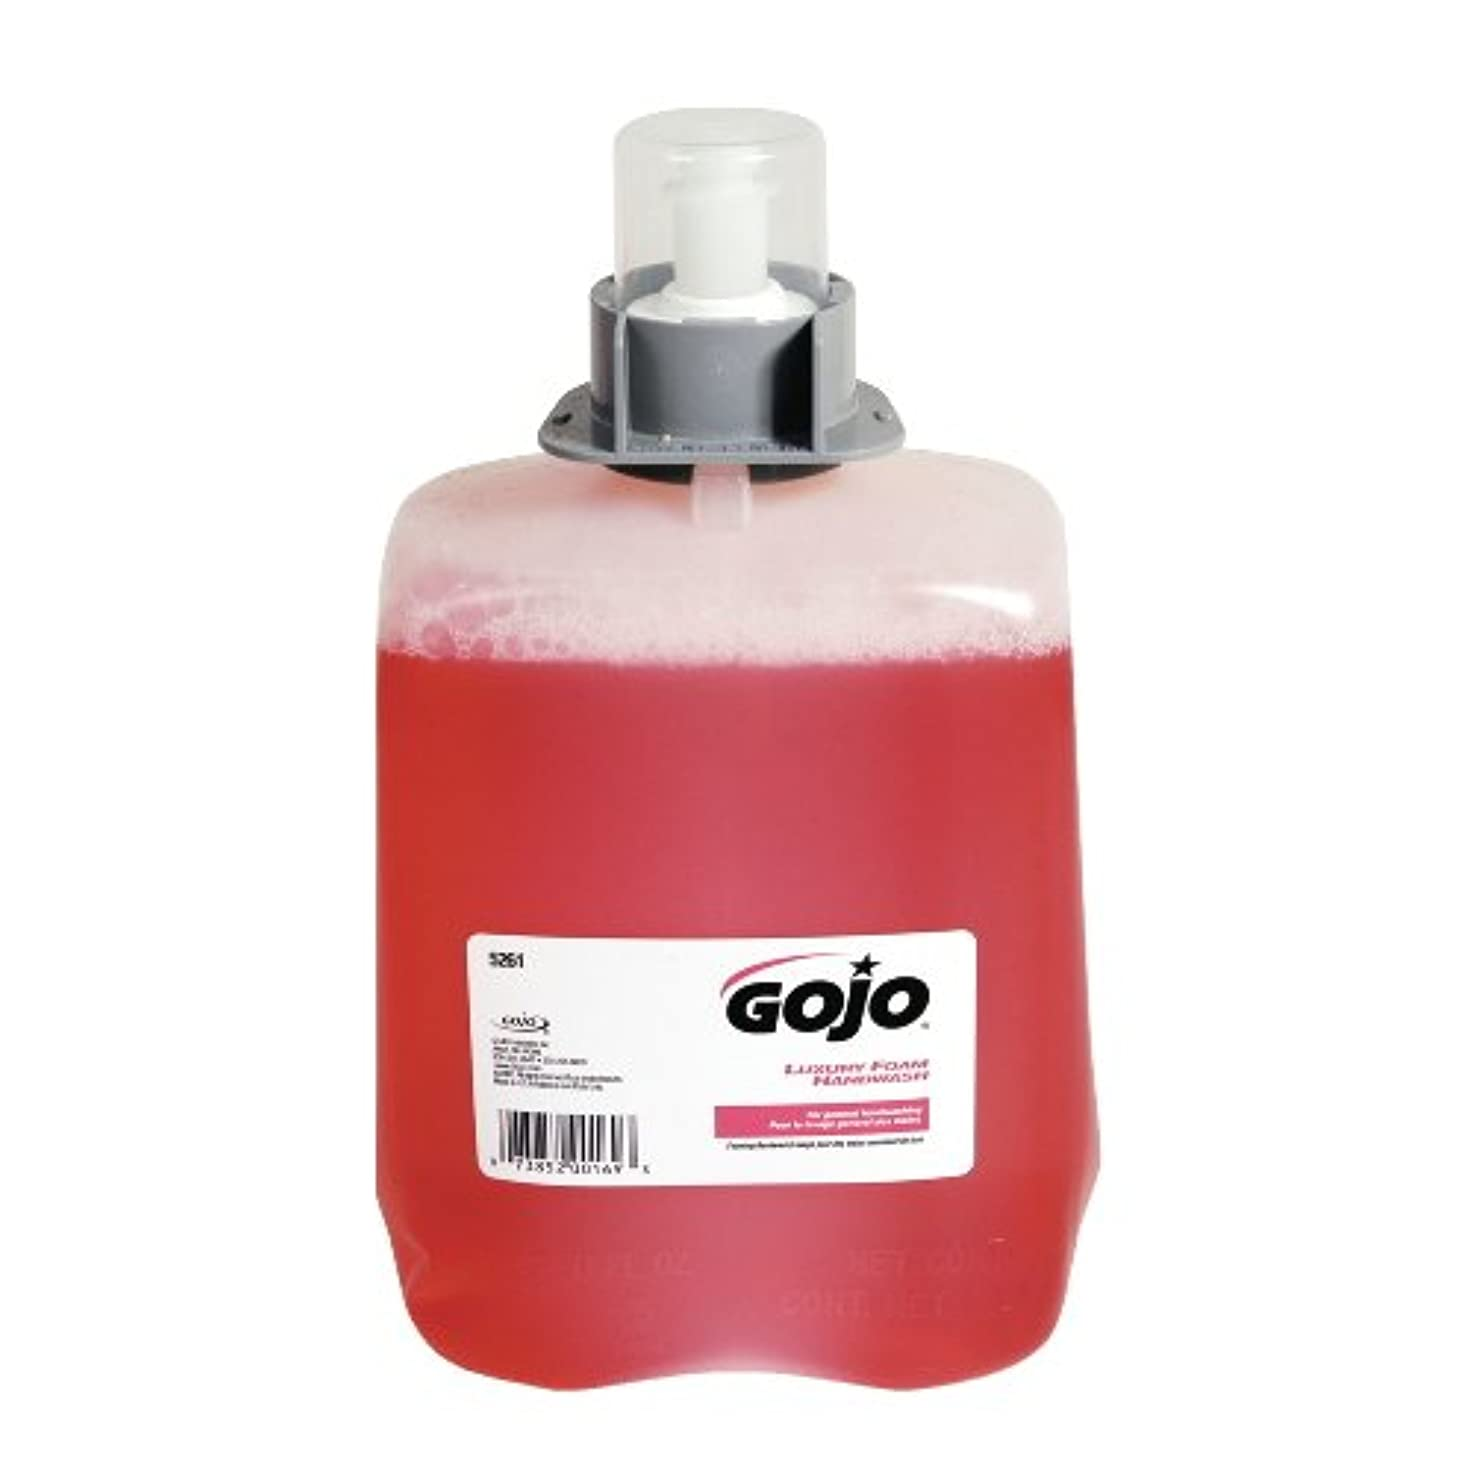 薬用激怒良性GOJ526102 - Gojo Luxury Foam Hand Wash Refill for FMX-20 Dispenser by Gojo